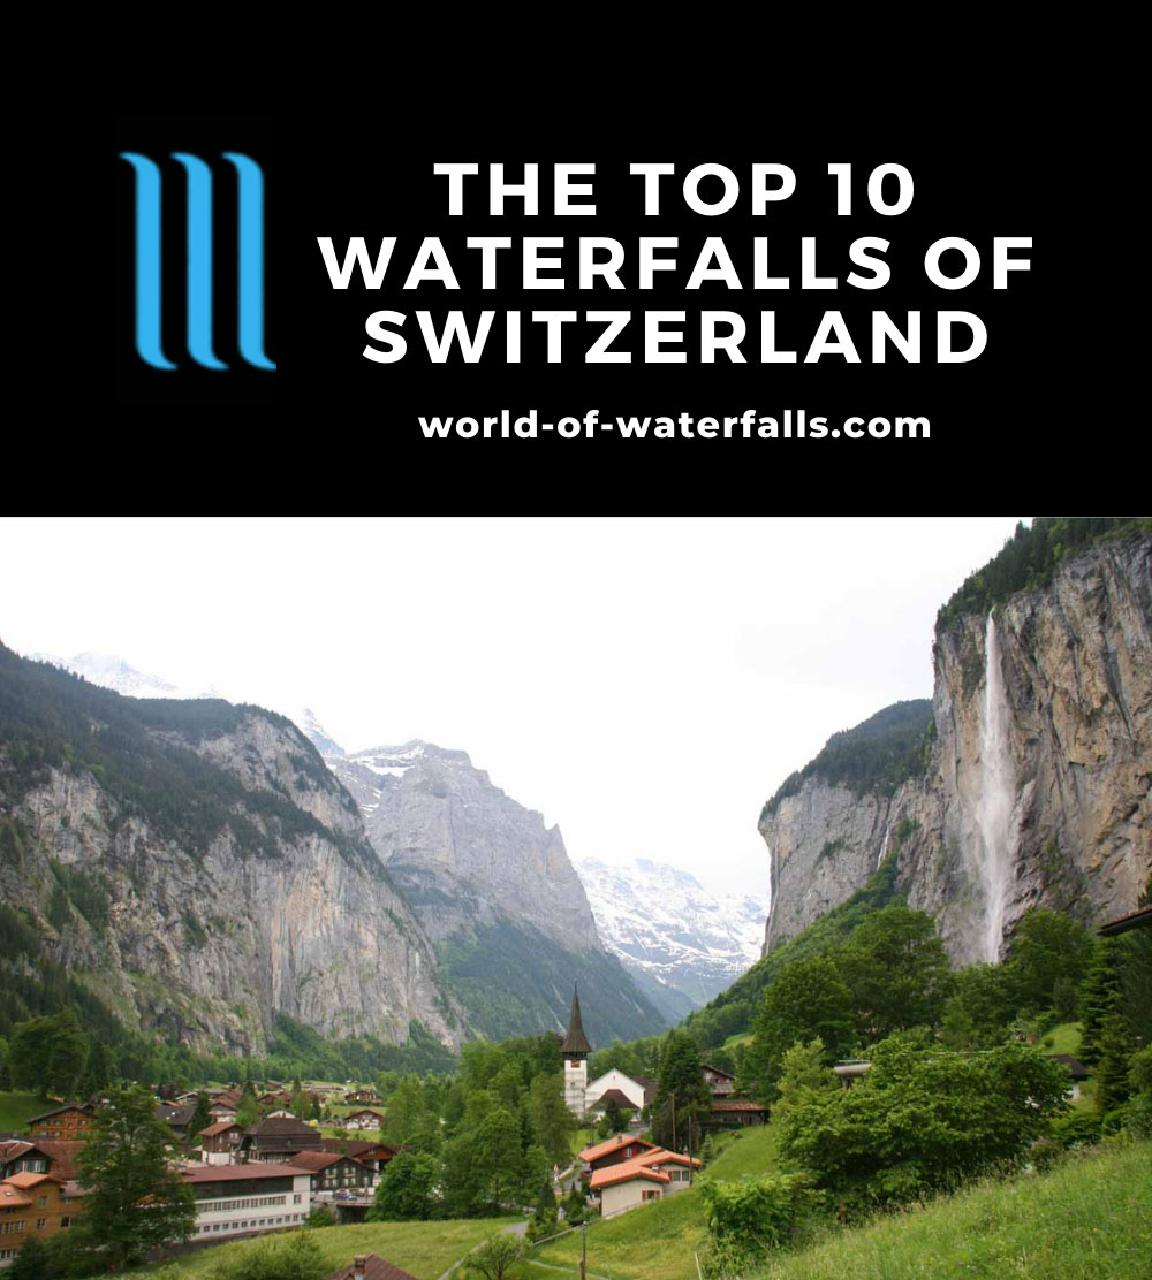 The Top 10 Waterfalls of Switzerland